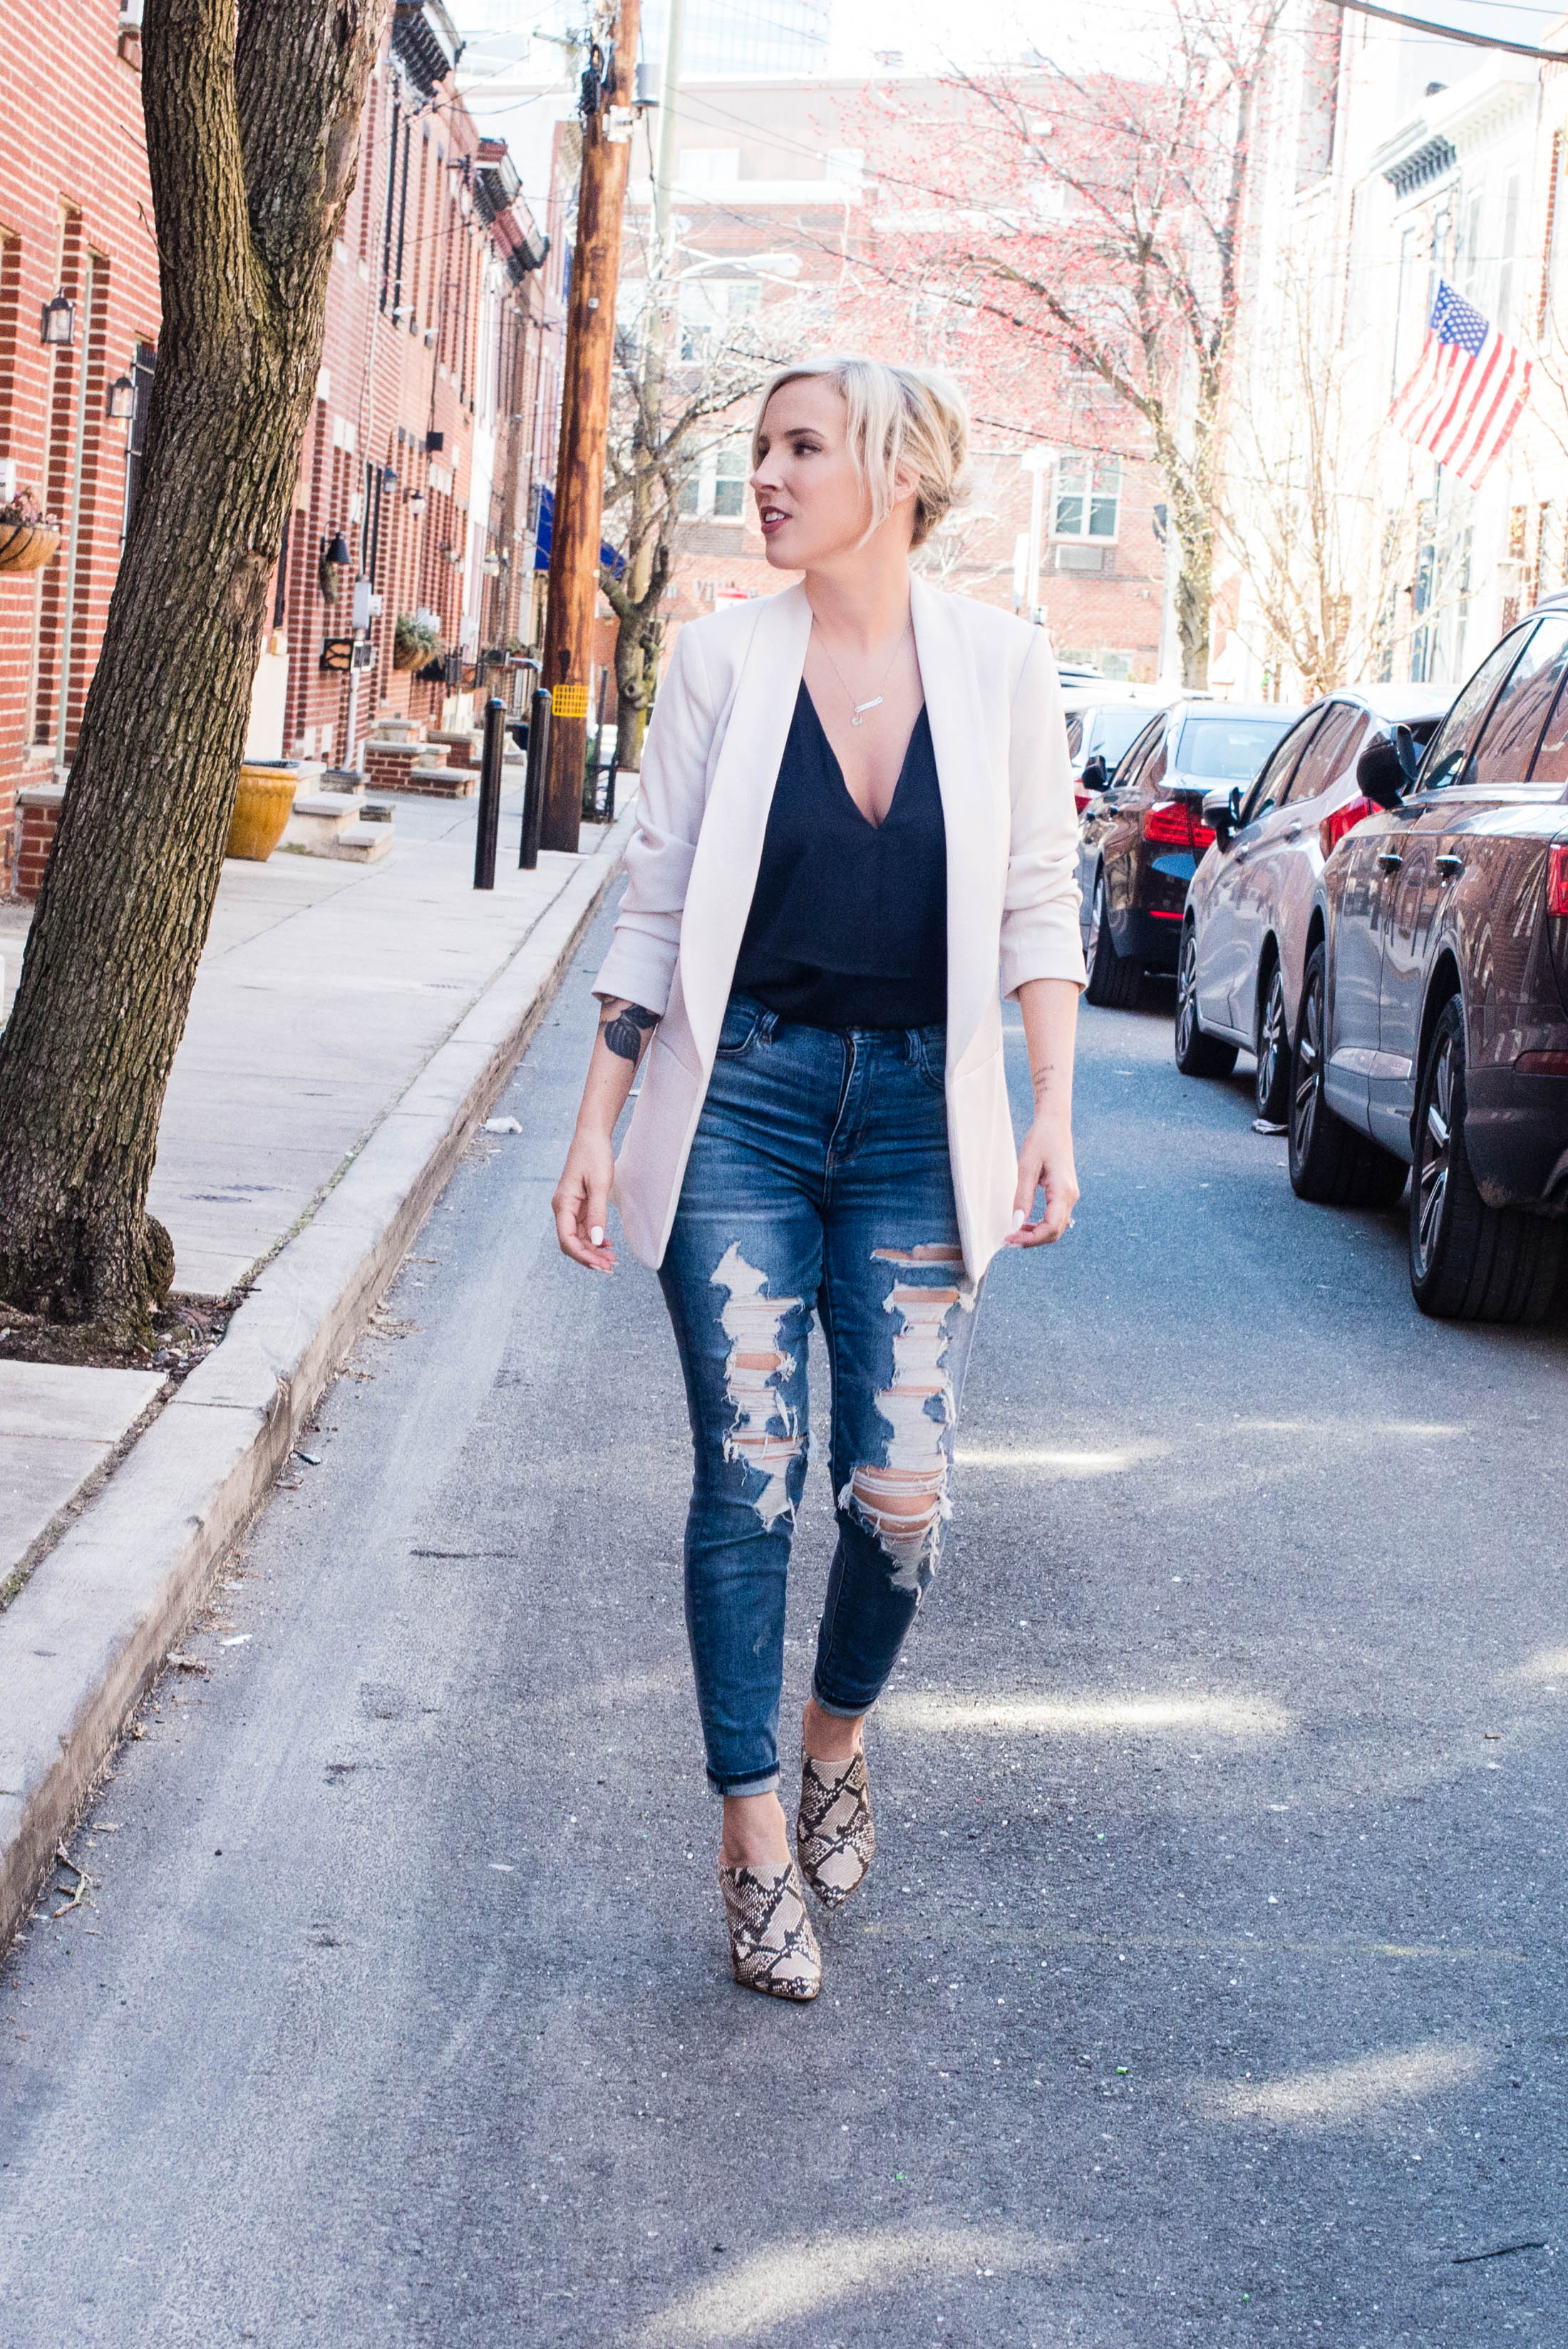 Blazers. YUP. They're an easy outfit staple to dress up your jeans or keep it casual with a dress. These 3 flattering looks make blazers a new daily go-to.